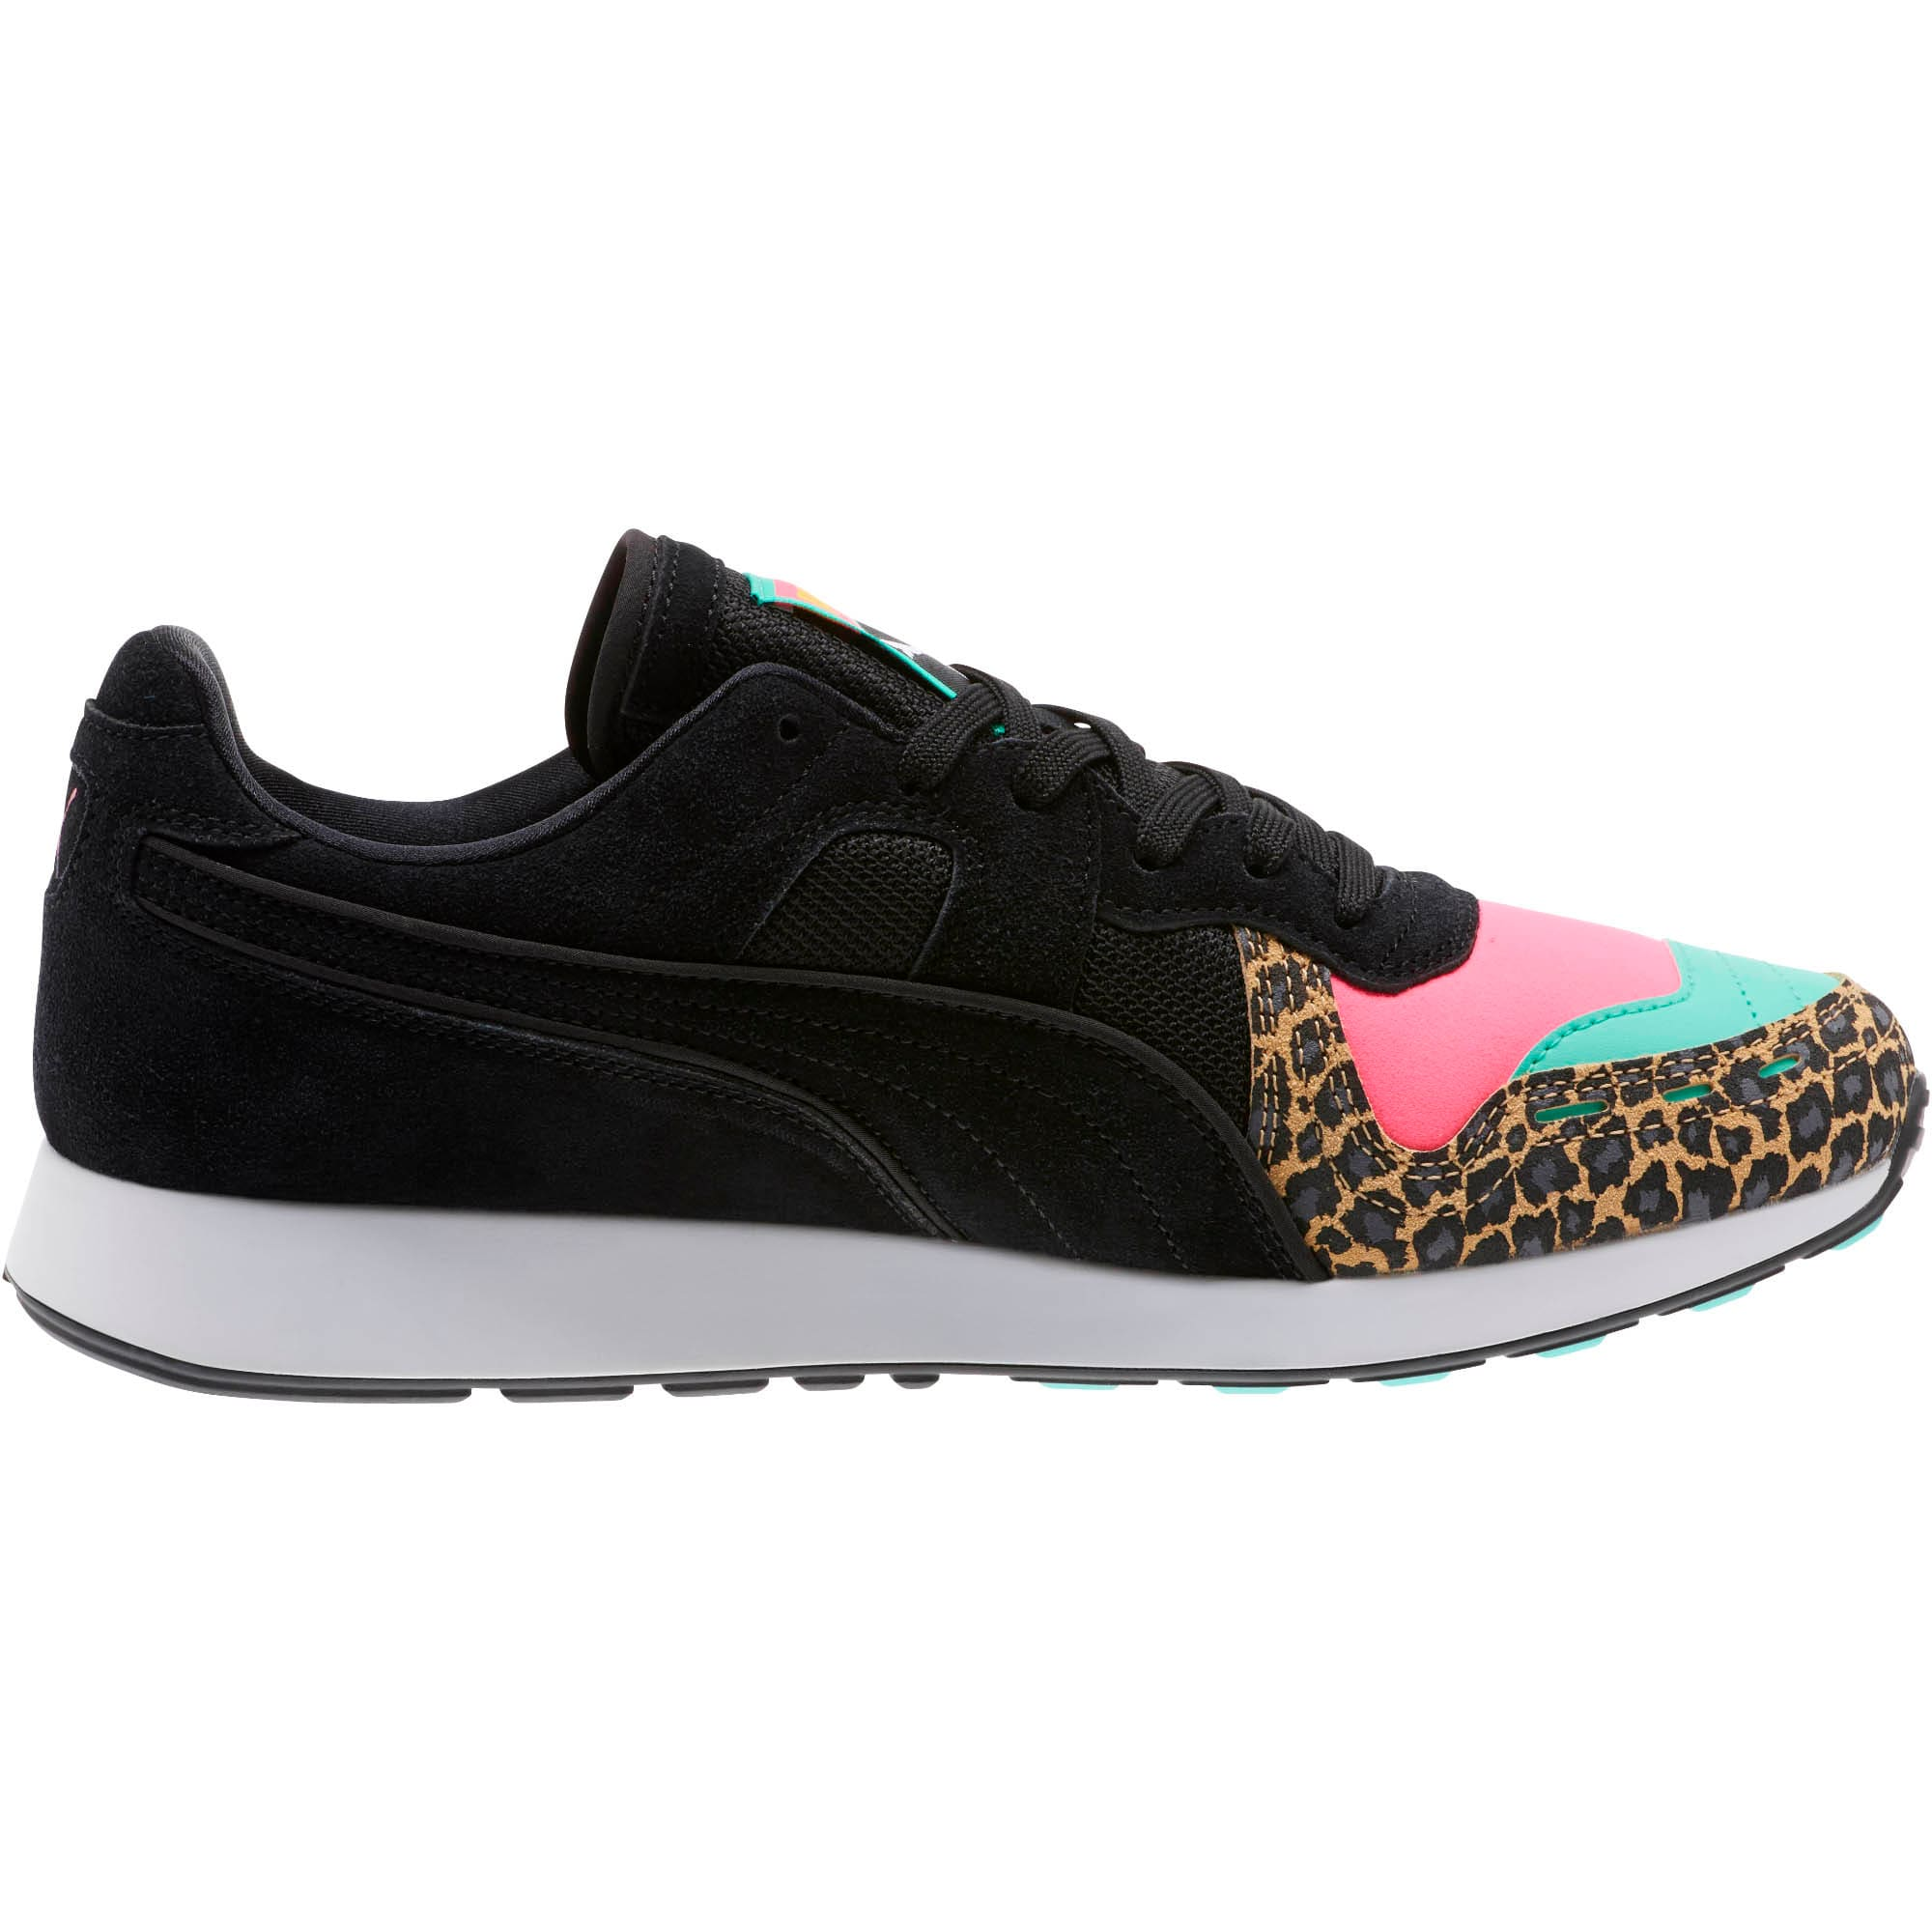 RS-100 Party Cheetah Sneakers, KNOCKOUT PINK-Puma Black, large